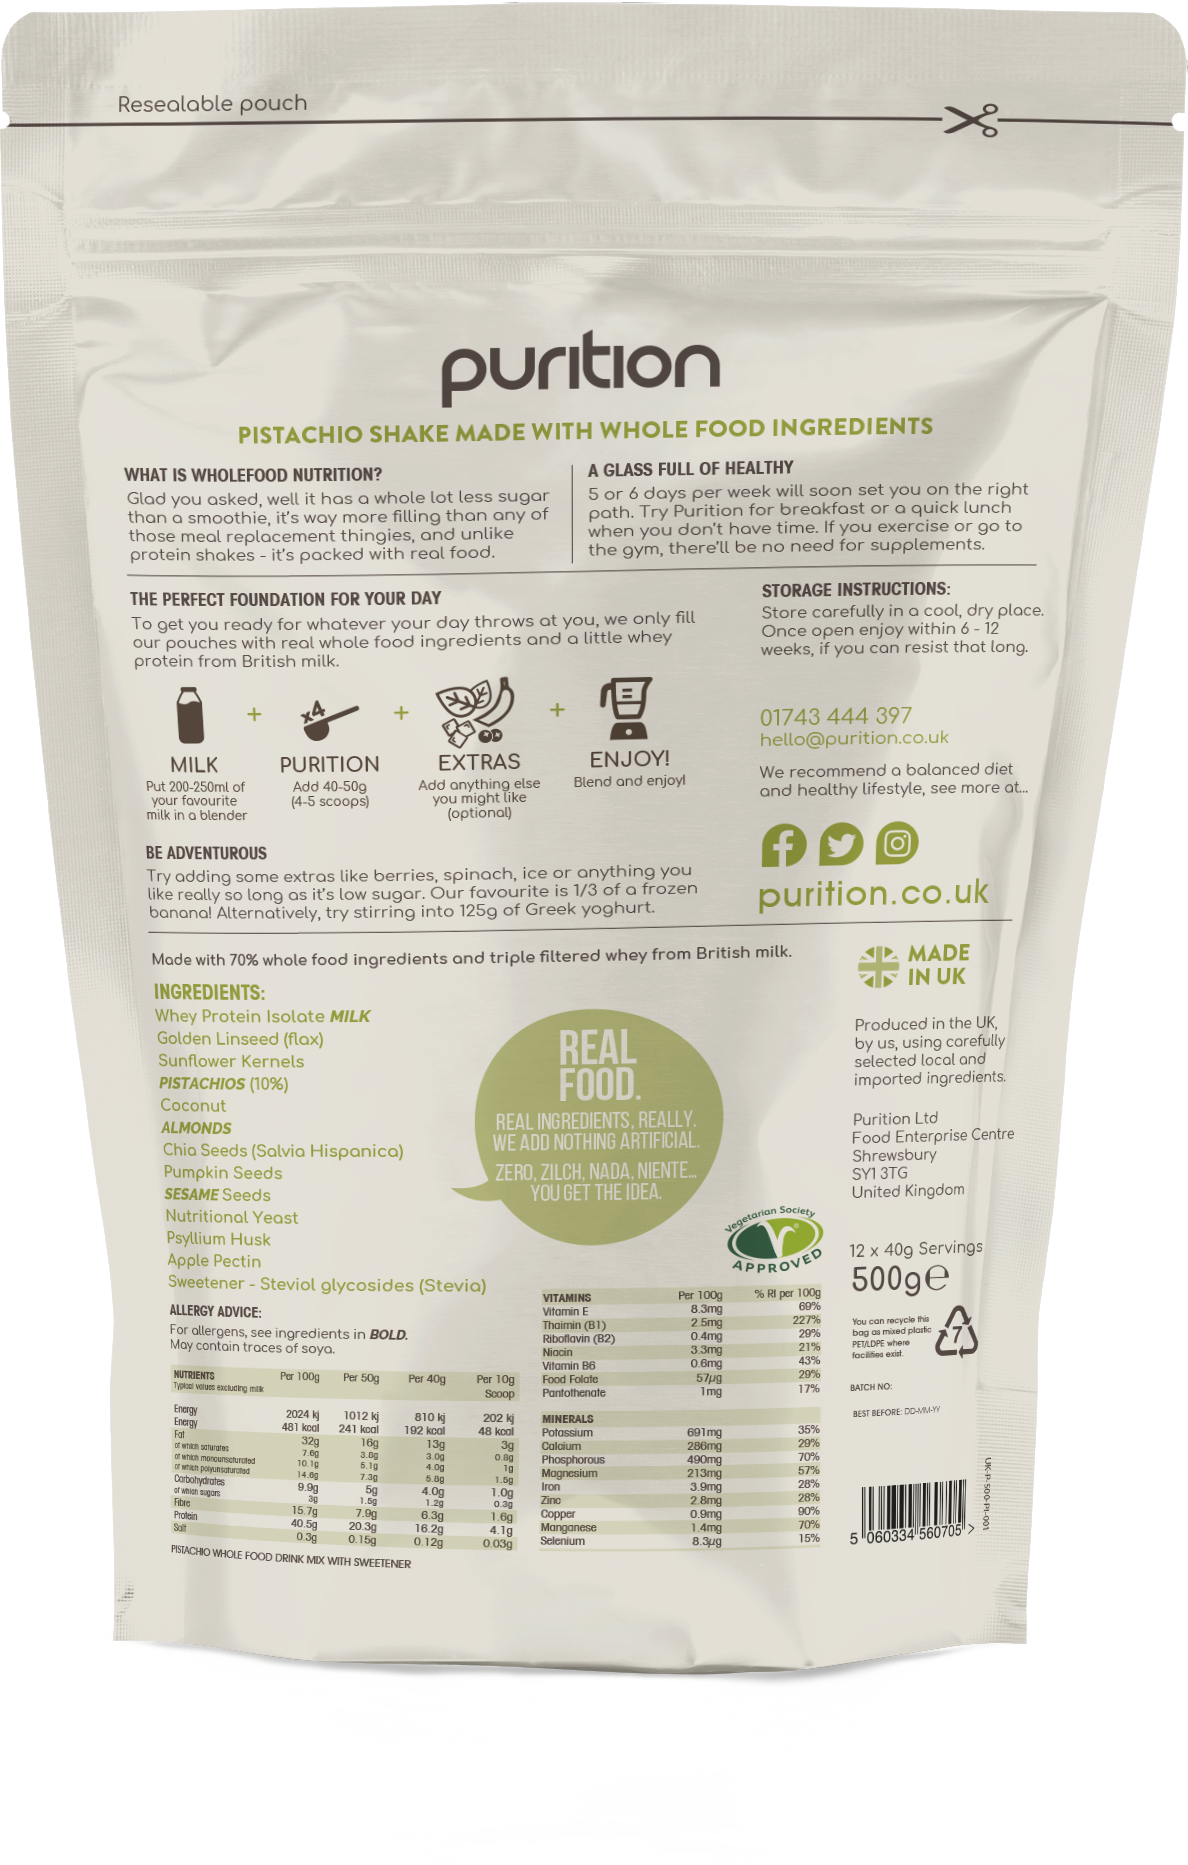 Wholefood Nutrition With Pistachios 500g